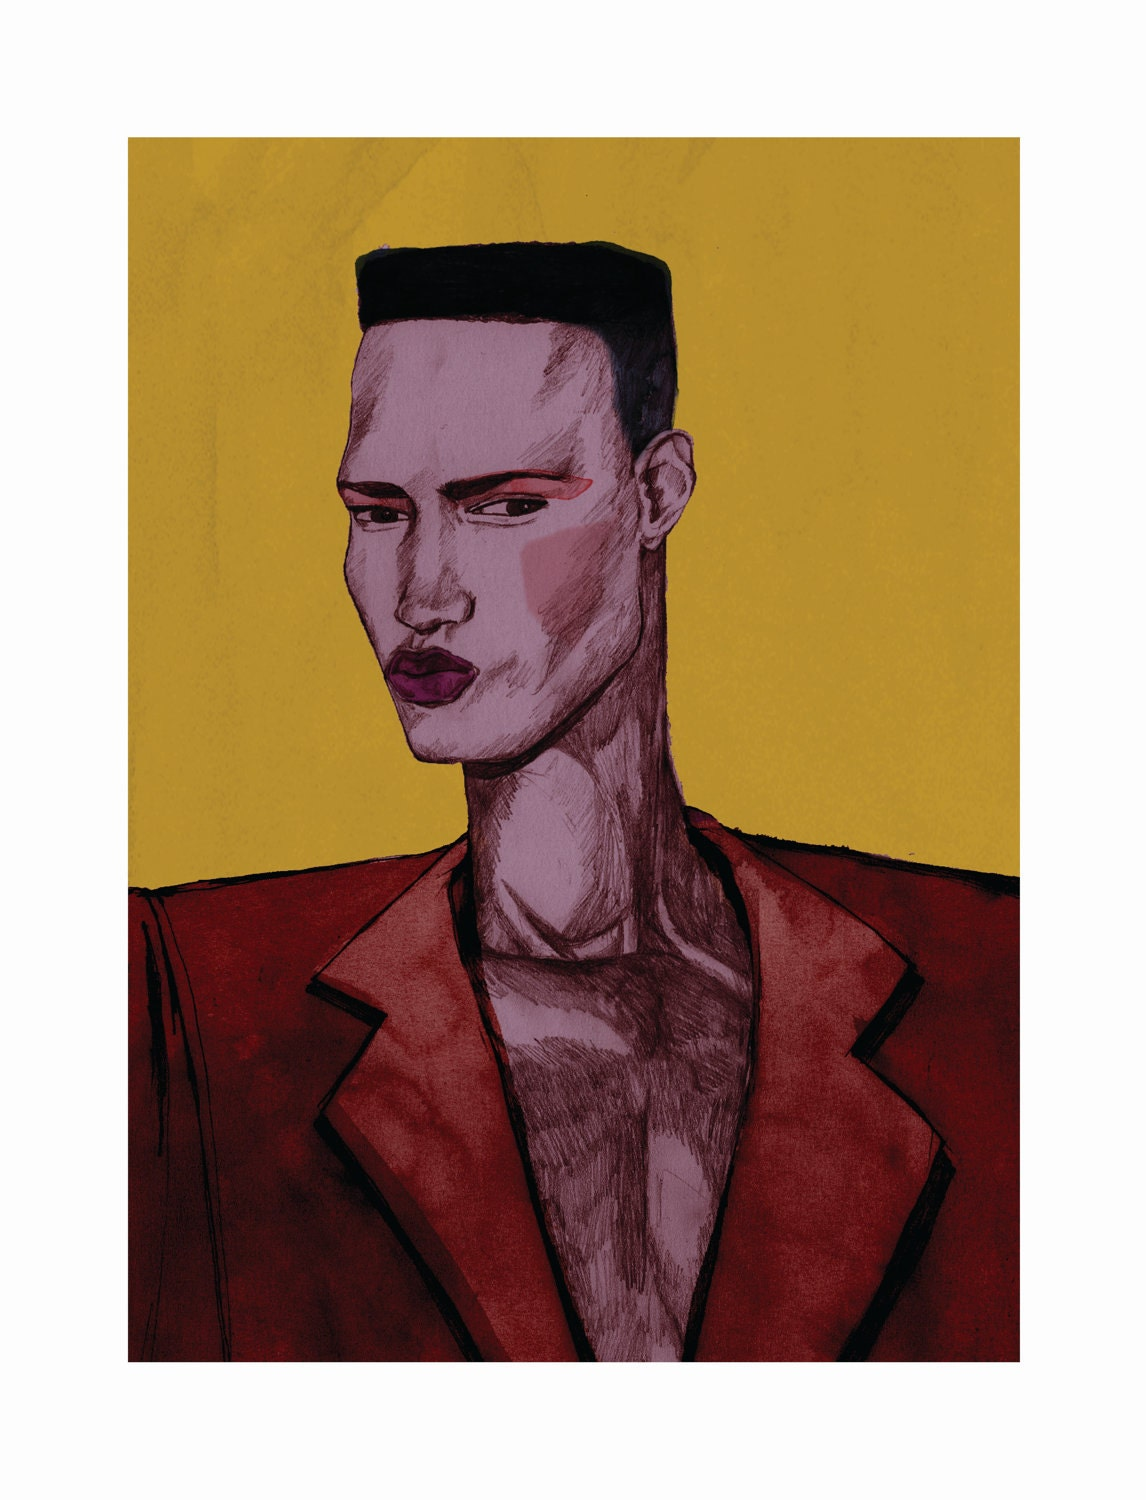 Large Grace Jones 'Androgyny'  Limited Edition  A3 Giclee Print by Bett Norris.